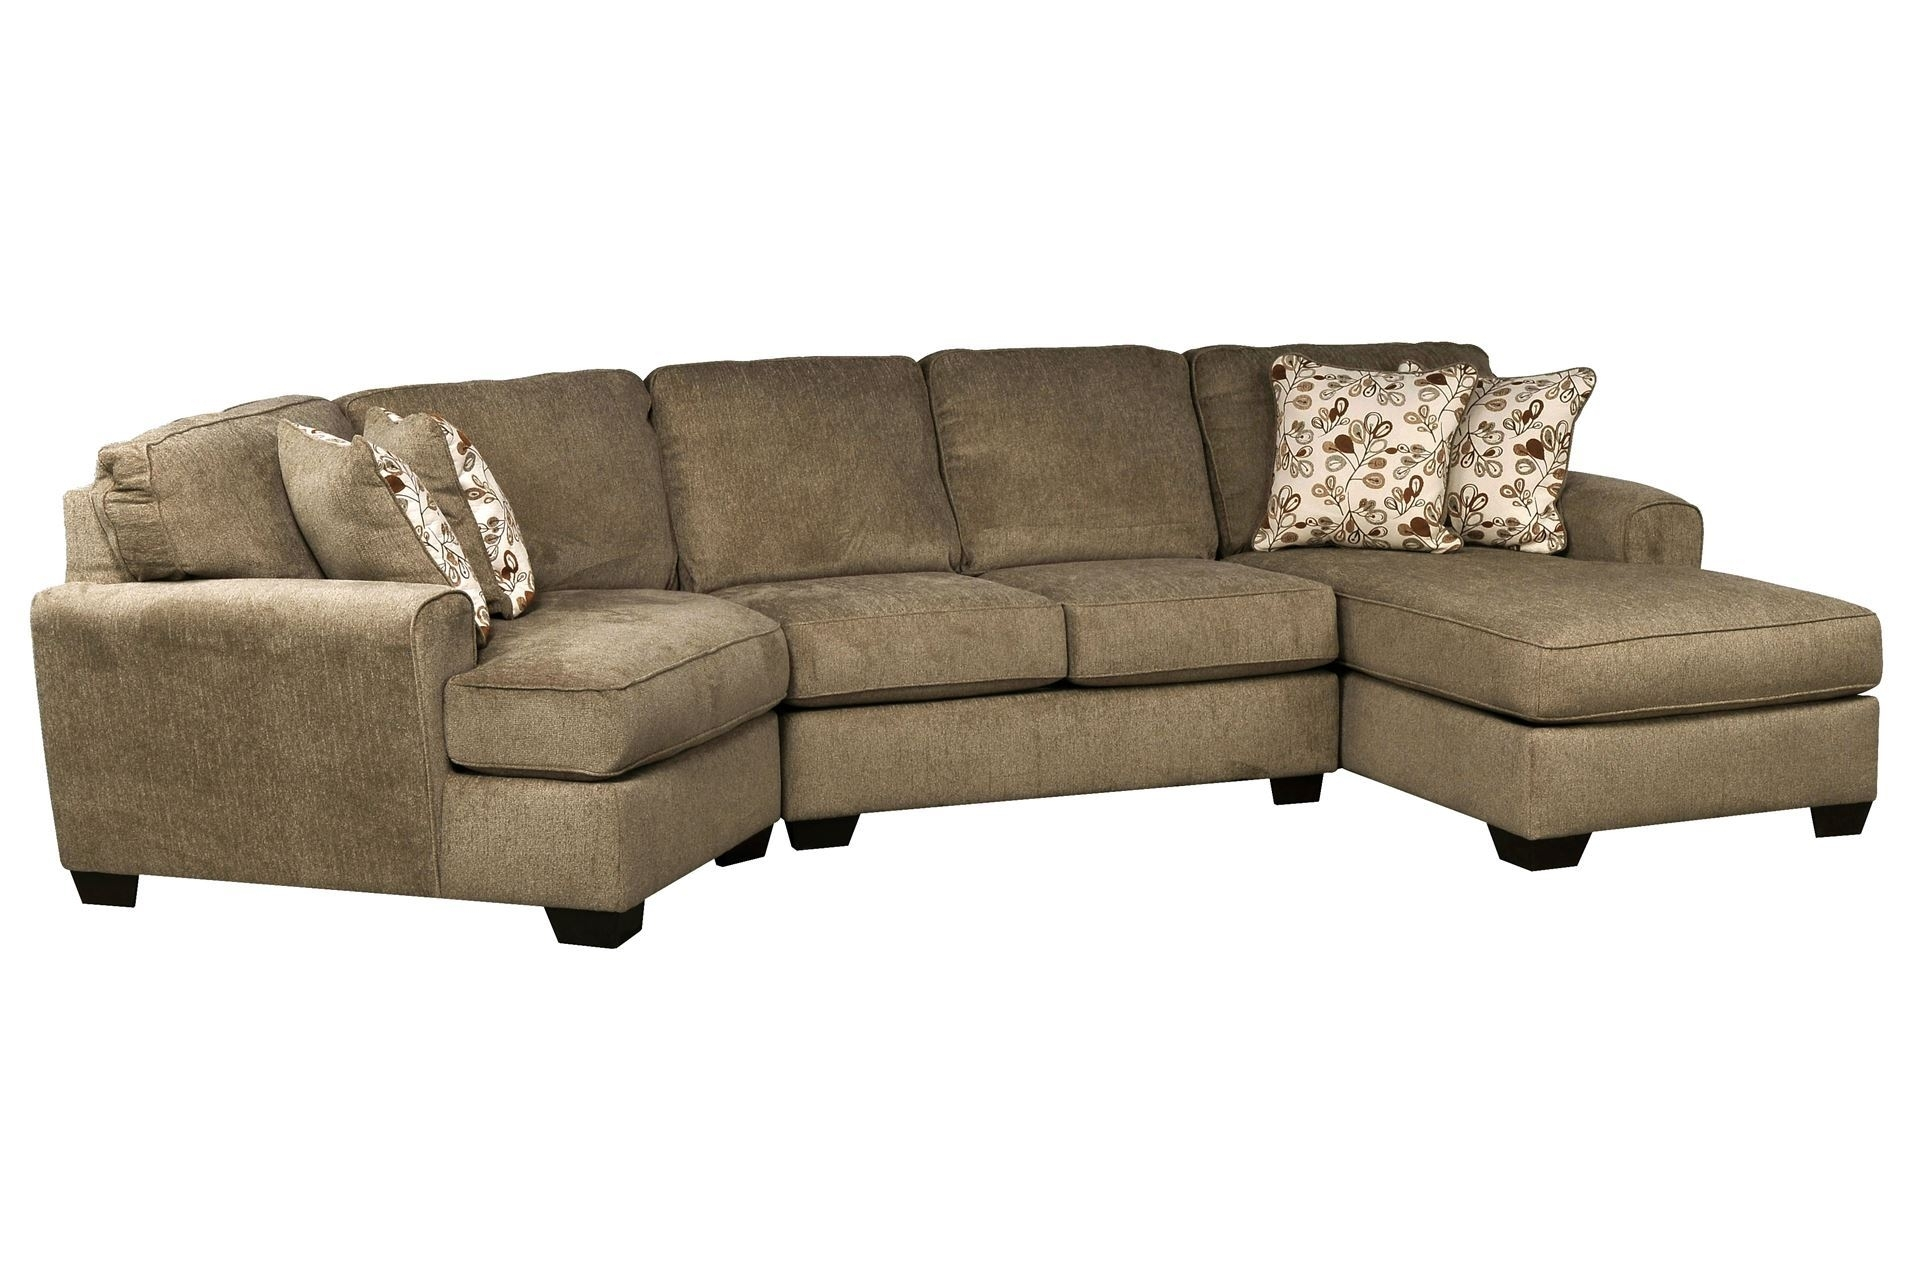 Don't Love The Color, But The Shape Is Great! | Patola Park 3 Piece Throughout Sectional Sofas With Cuddler Chaise (View 3 of 10)